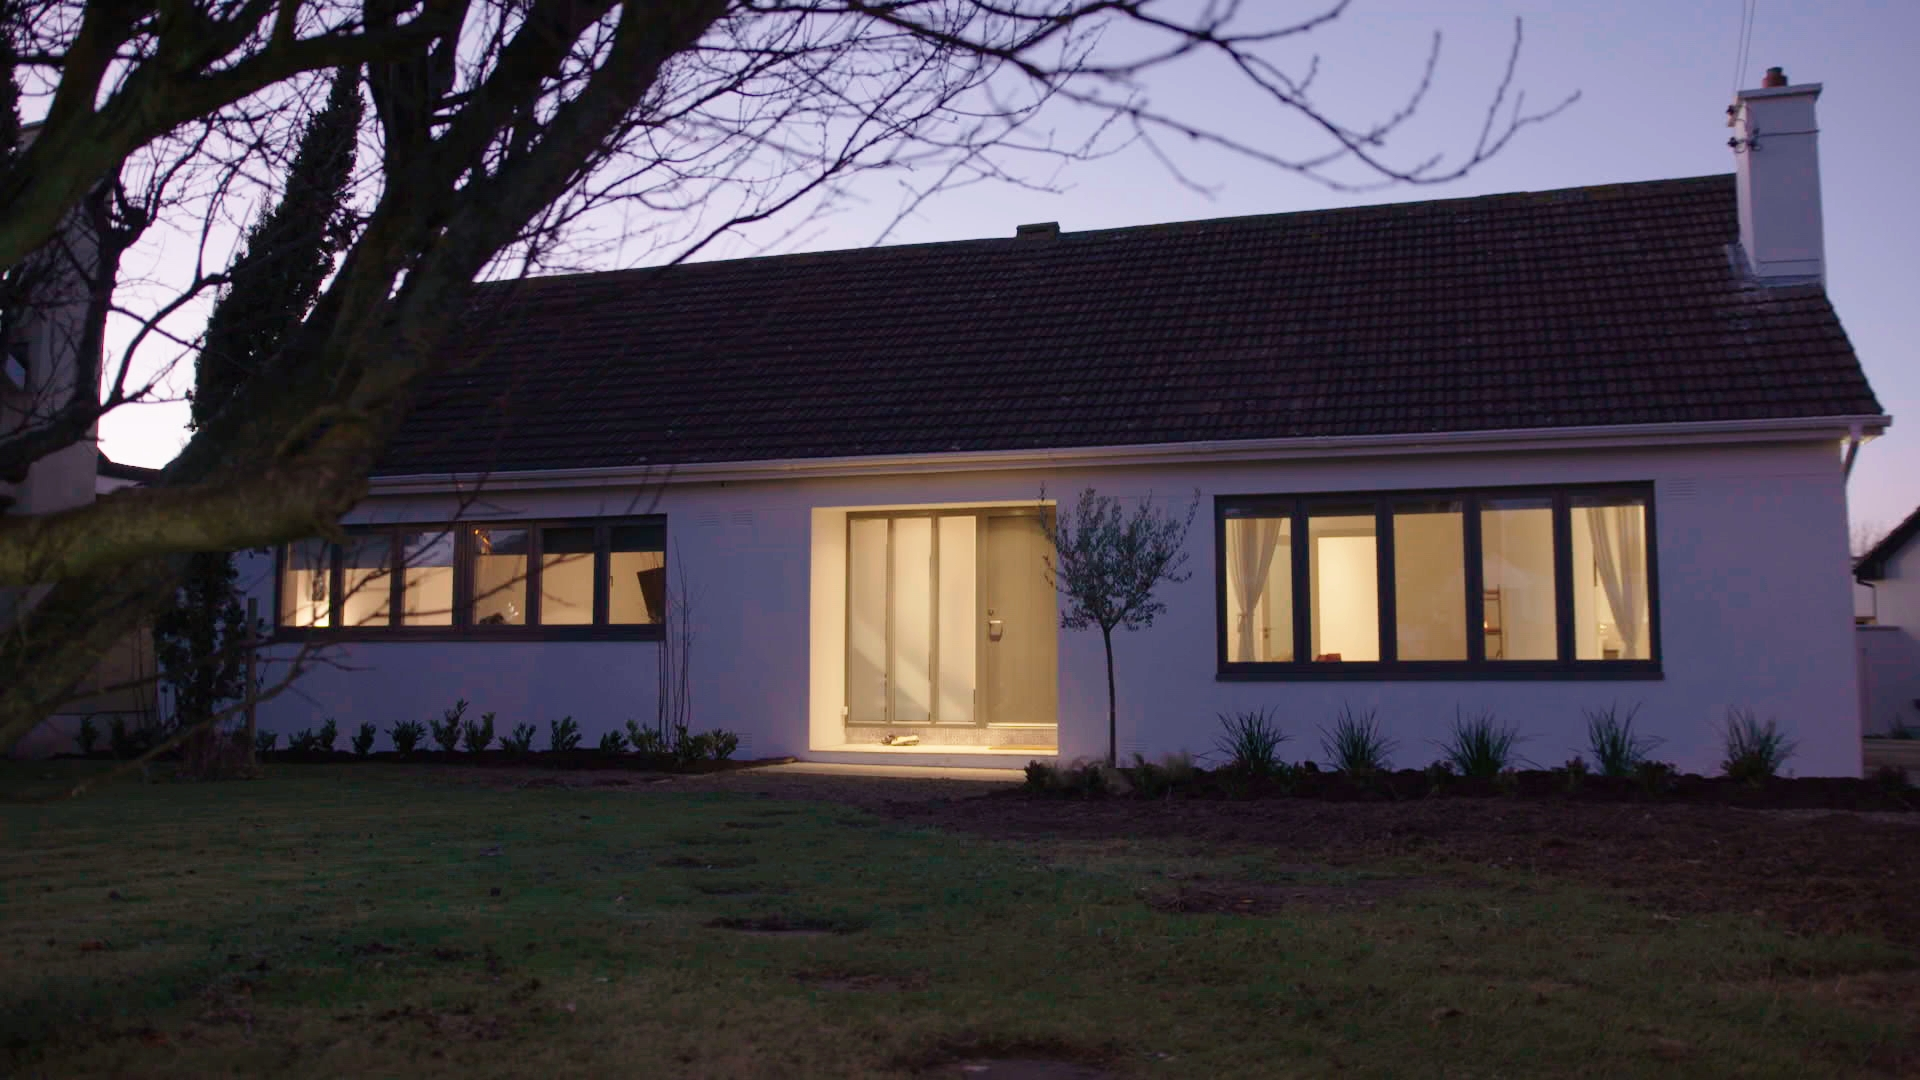 TX4 RTI10 Sutton AFTER Front of house at night.jpg